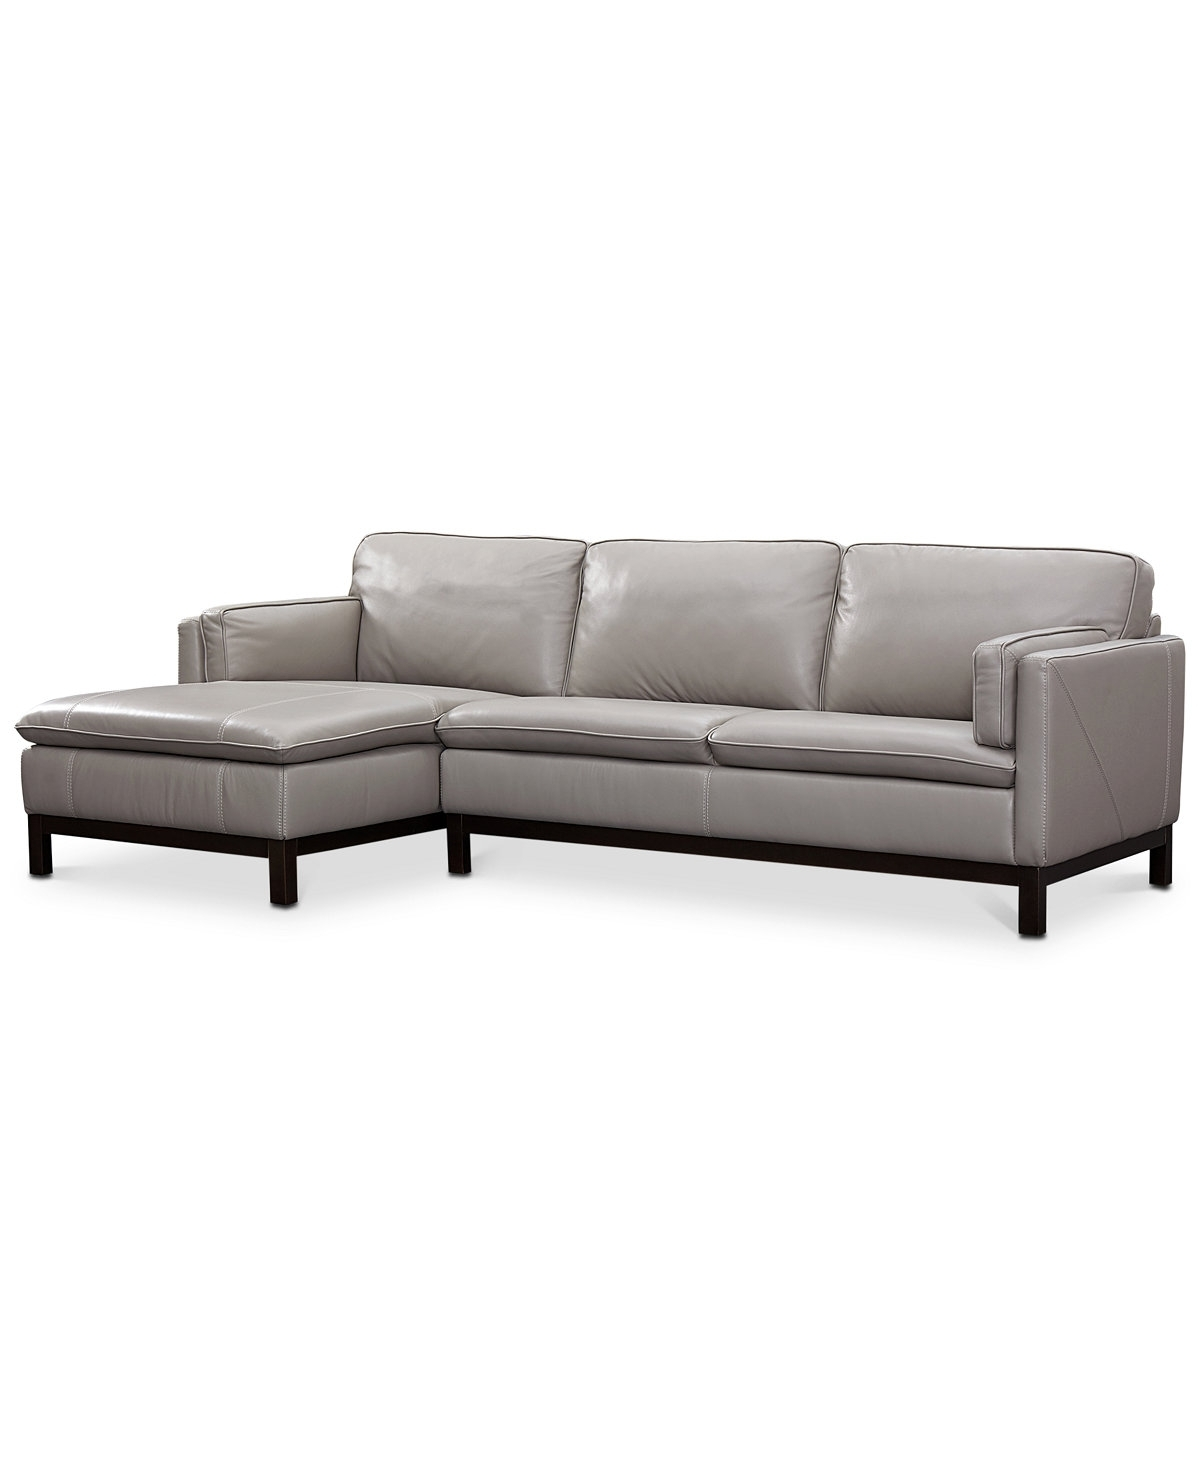 Well Liked El Paso Sectional Sofas Intended For Ventroso 2 Pc (View 15 of 20)